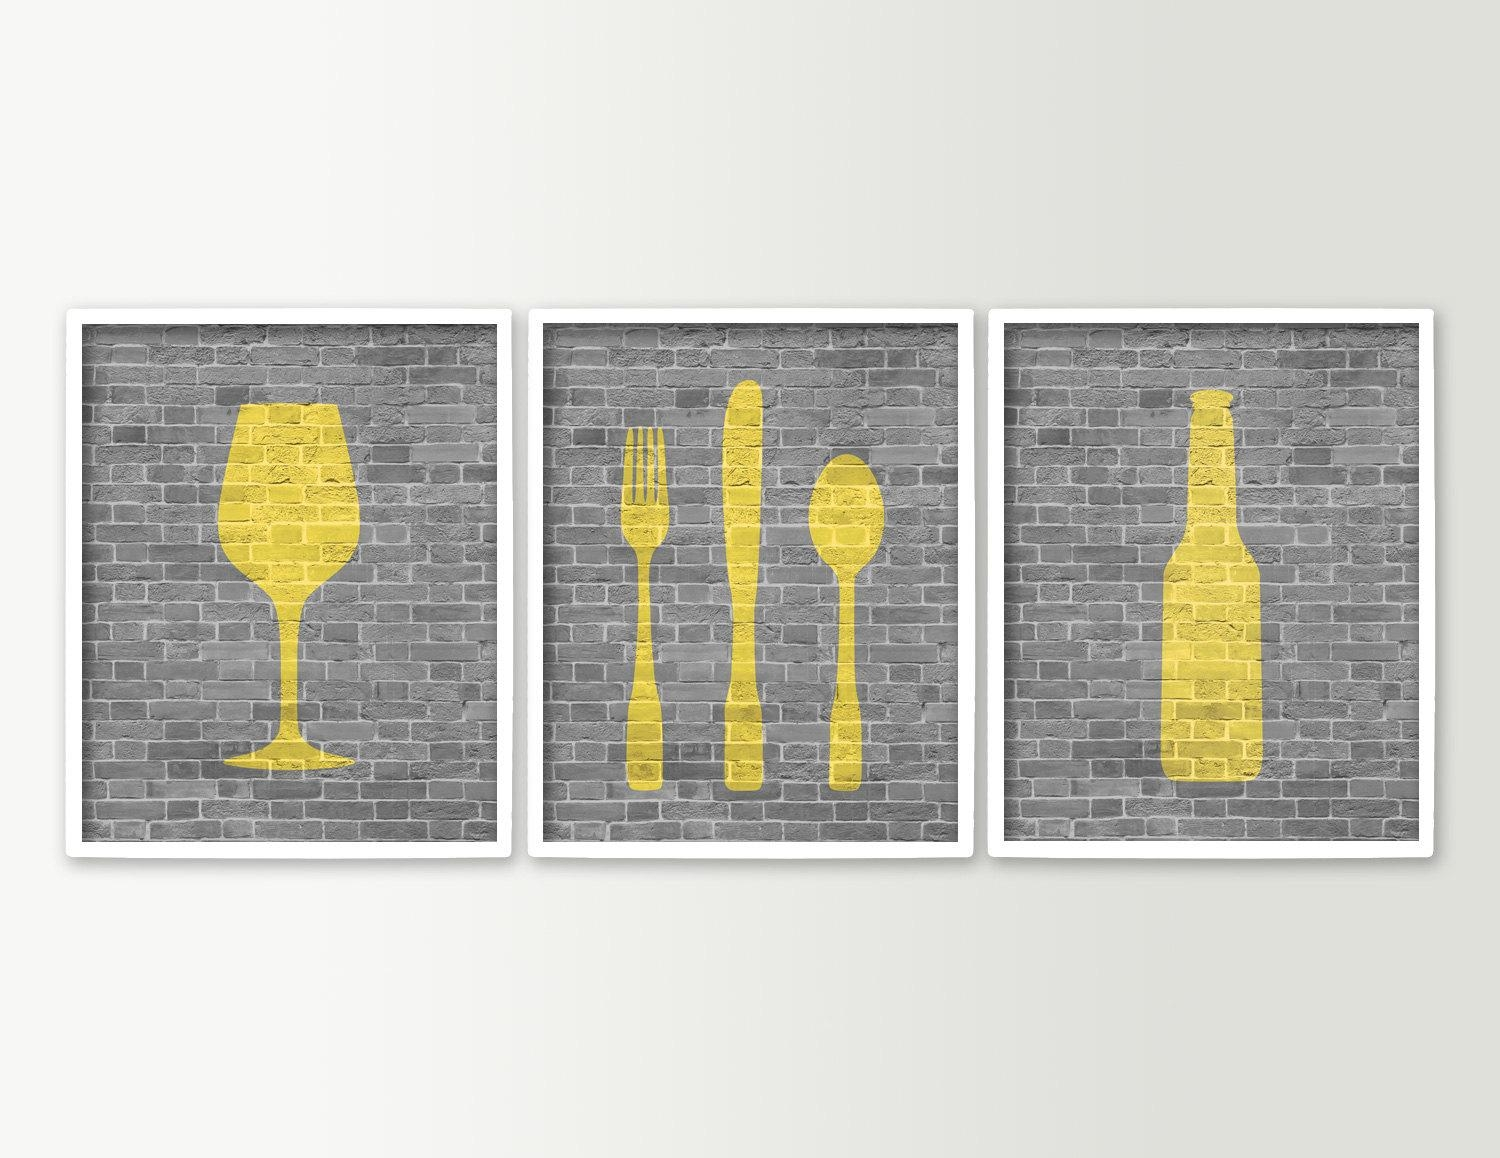 Stupendous Wall Art For Kitchen Details About Coffee Wall Wall With Regard To Art For Kitchen Walls (View 15 of 20)